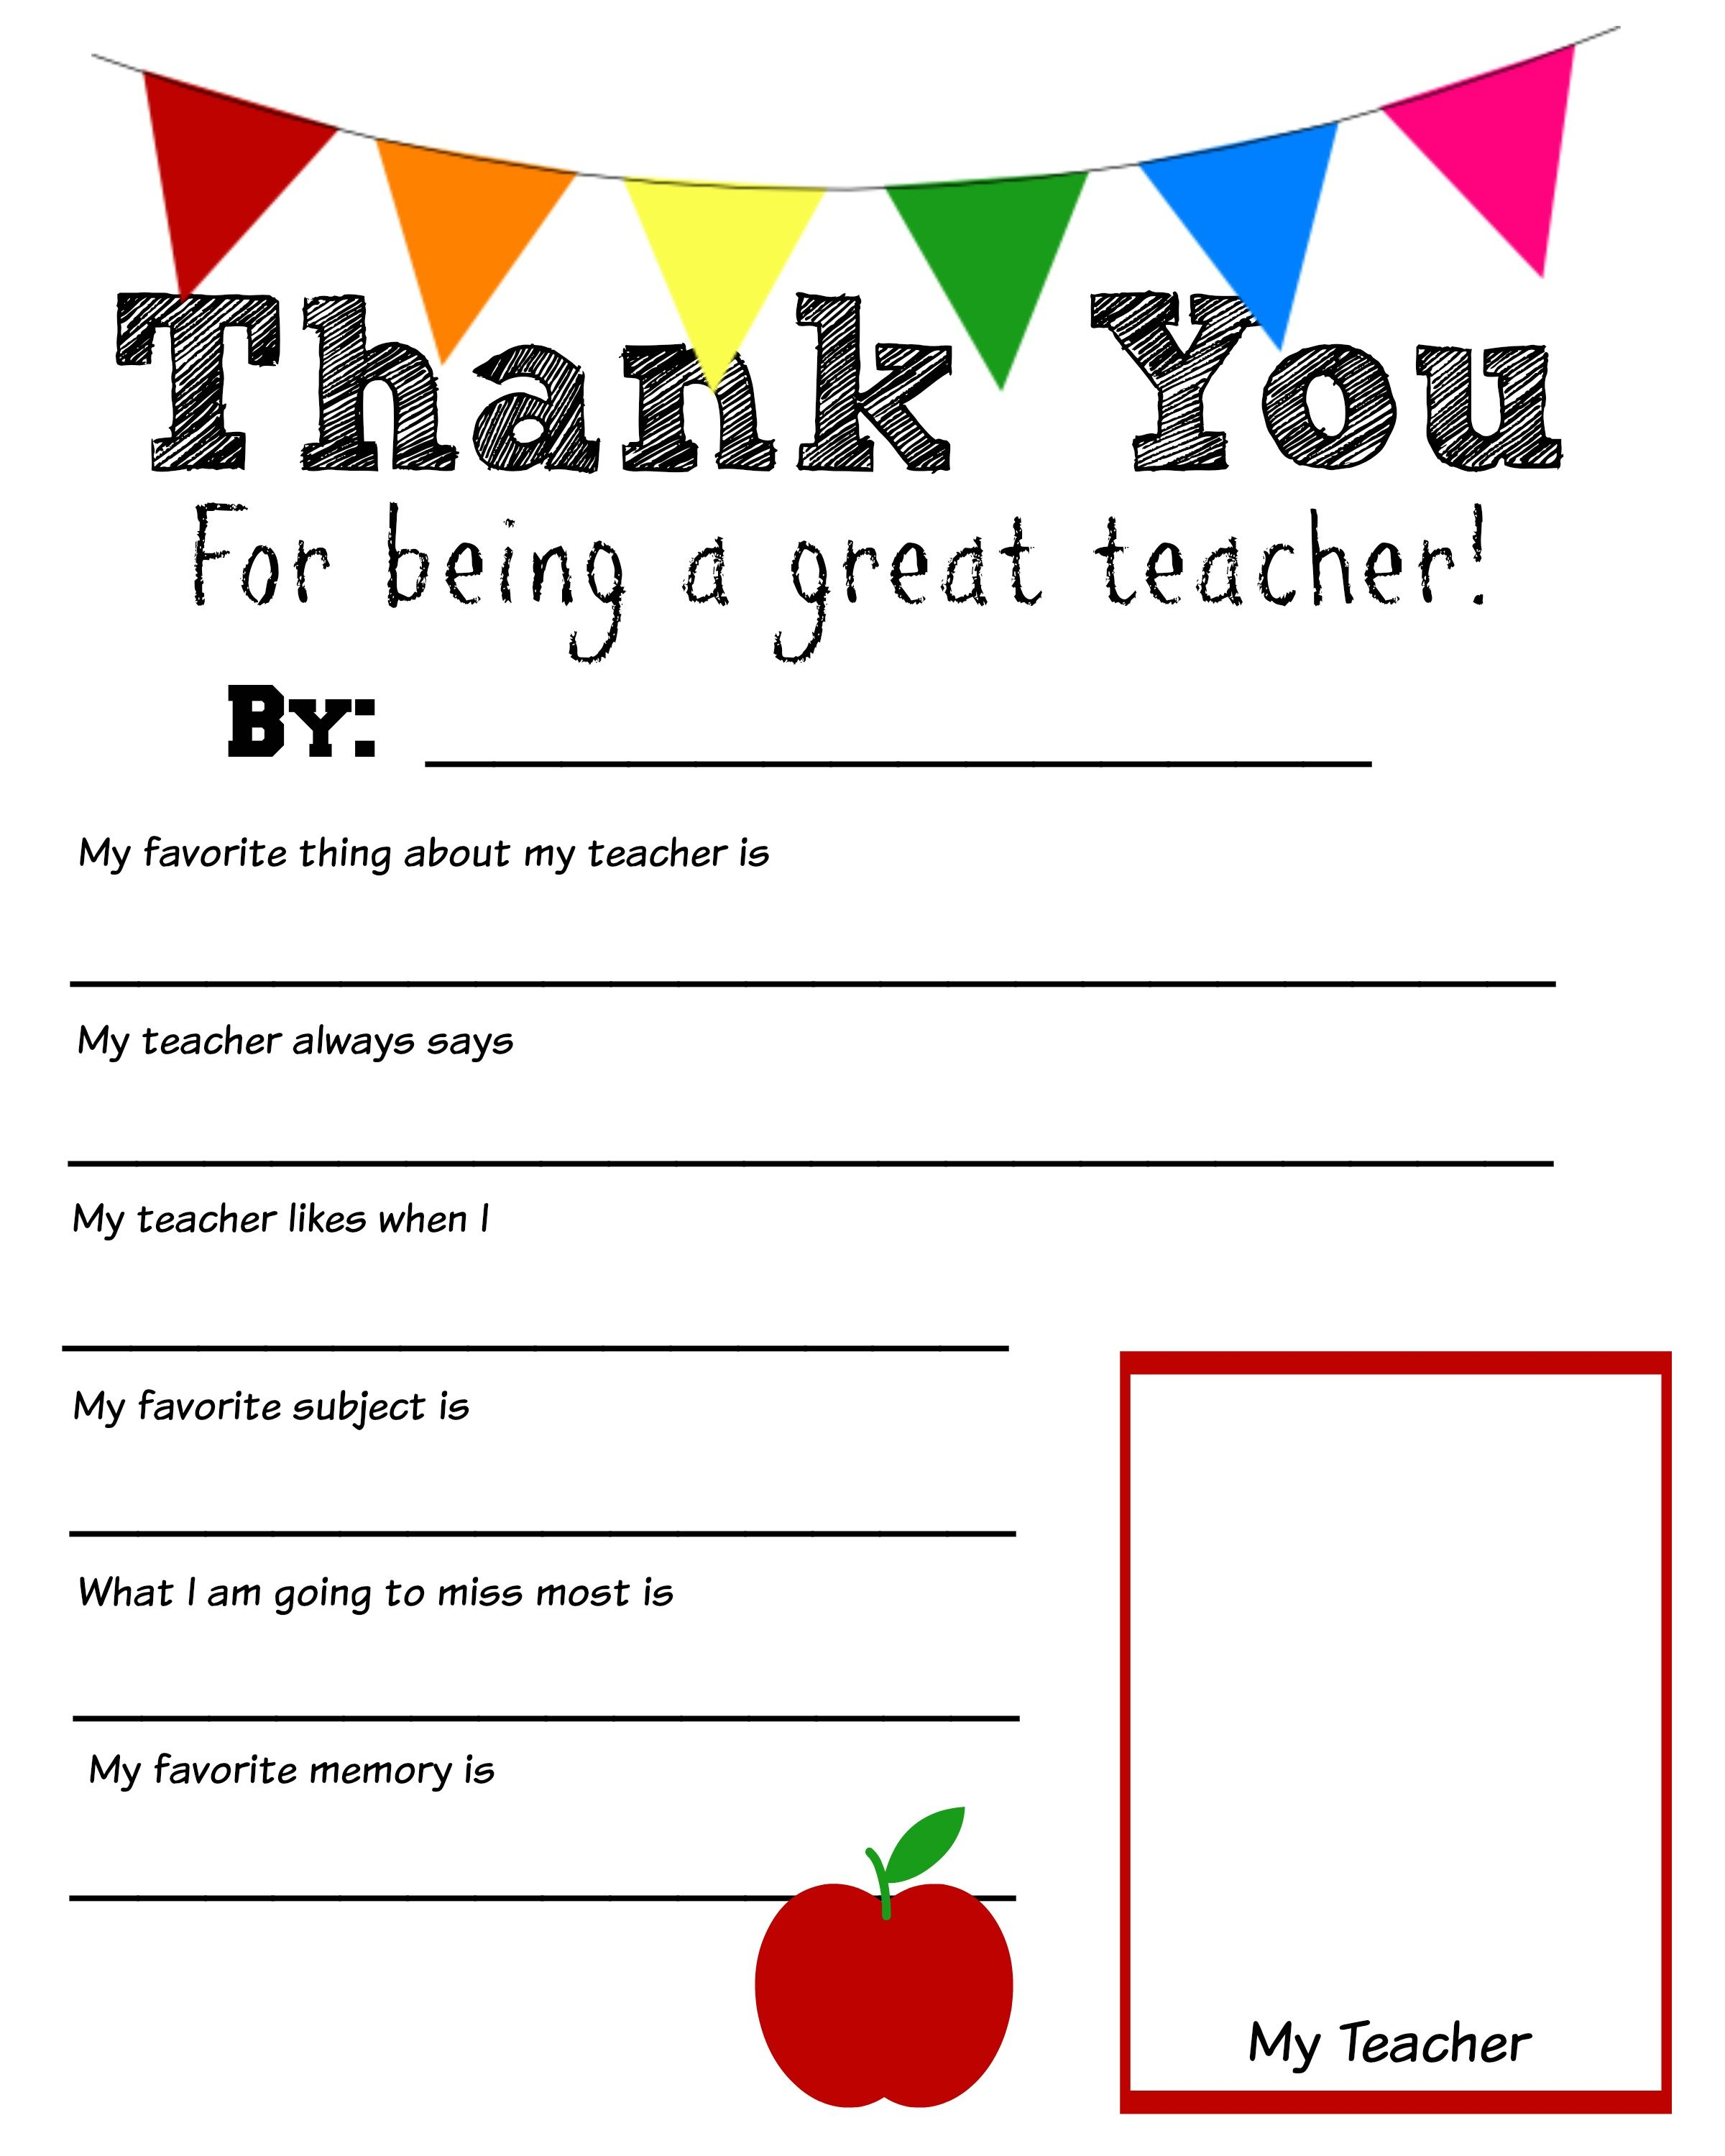 graphic about All About My Teacher Free Printable called Thank Oneself Trainer Cost-free Printable